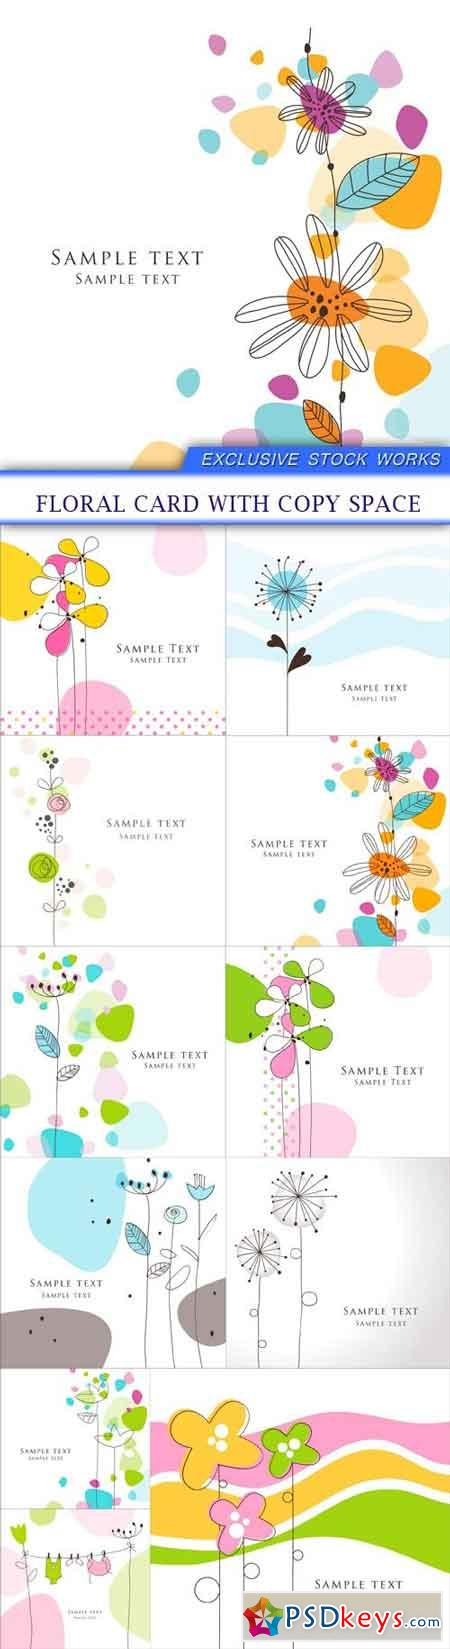 Floral card with copy space 11X EPS